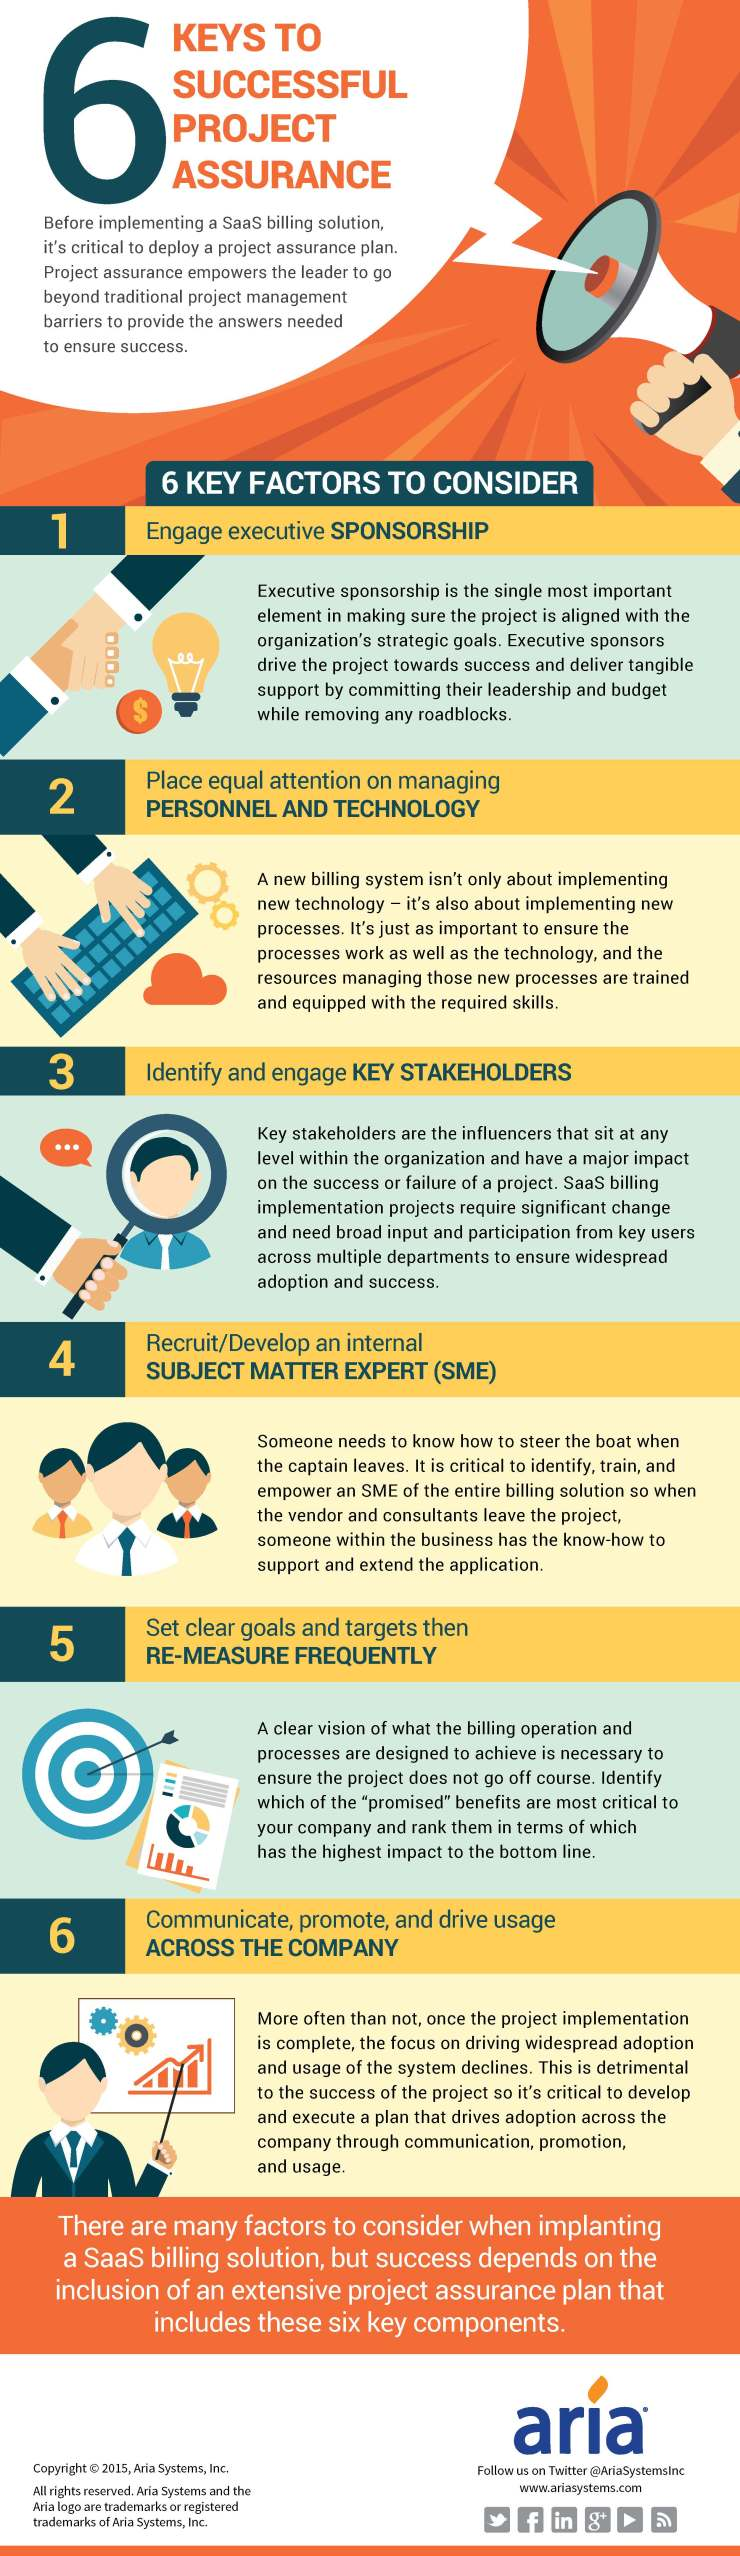 6Keys_to_successful_project_assurance_final